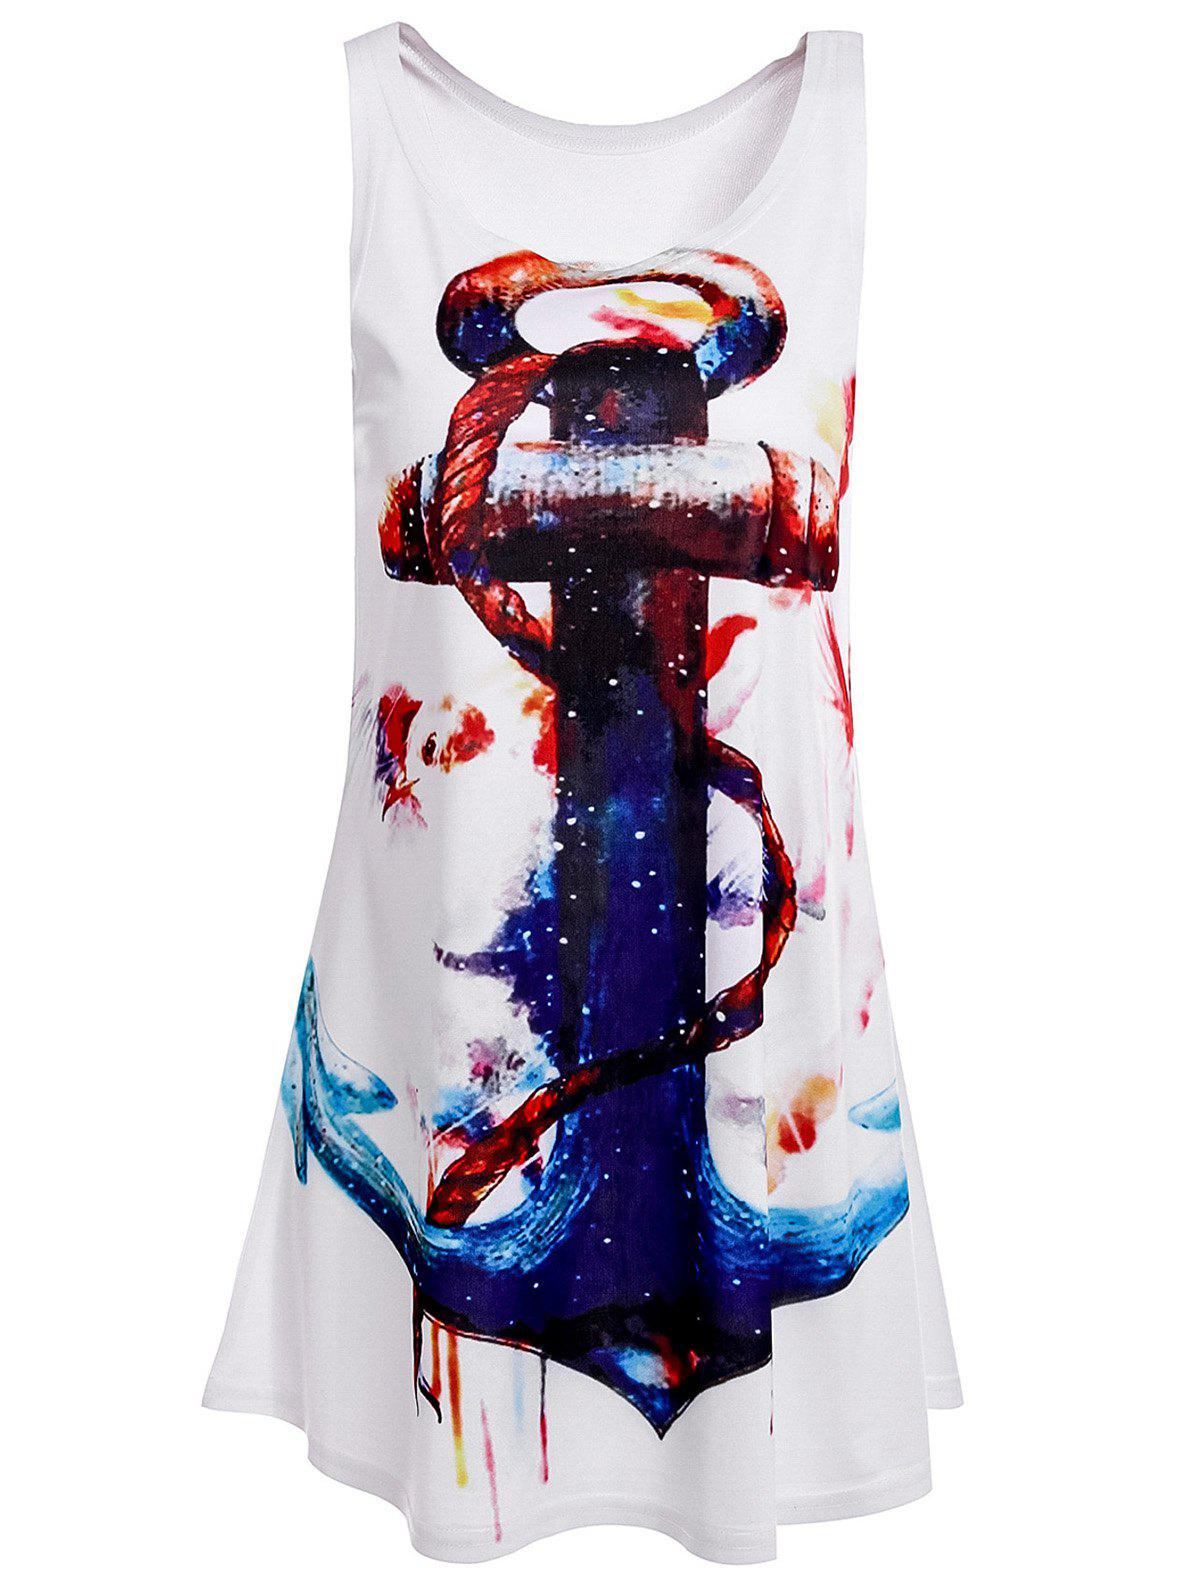 Casual Anchor Print Scoop Neck Sleeveless T-Shirt For Women - ONE SIZE(FIT SIZE XS TO M) WHITE